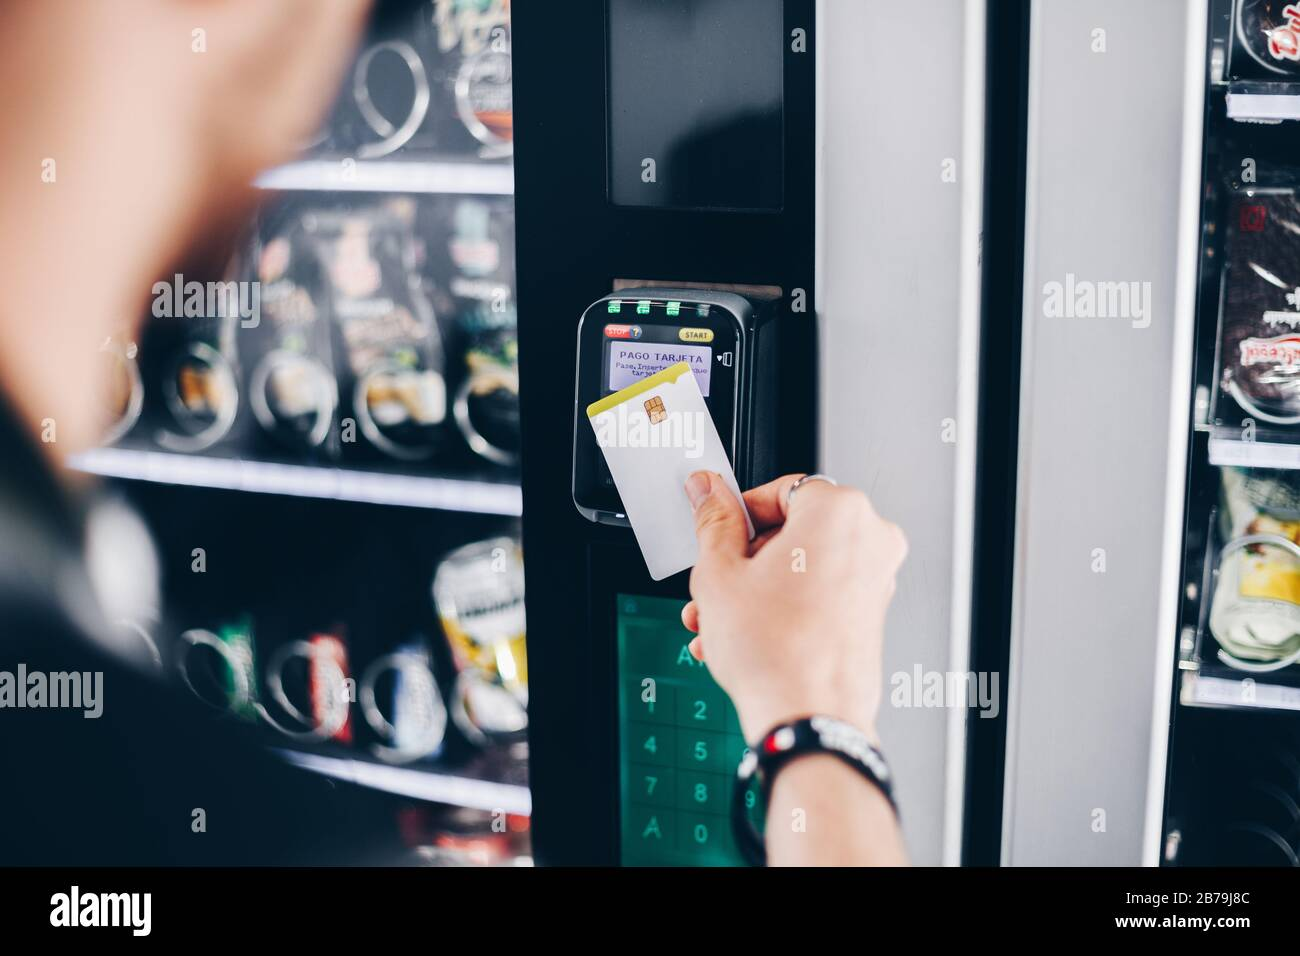 Student using the contactless payment method in a vending machine. Stock Photo